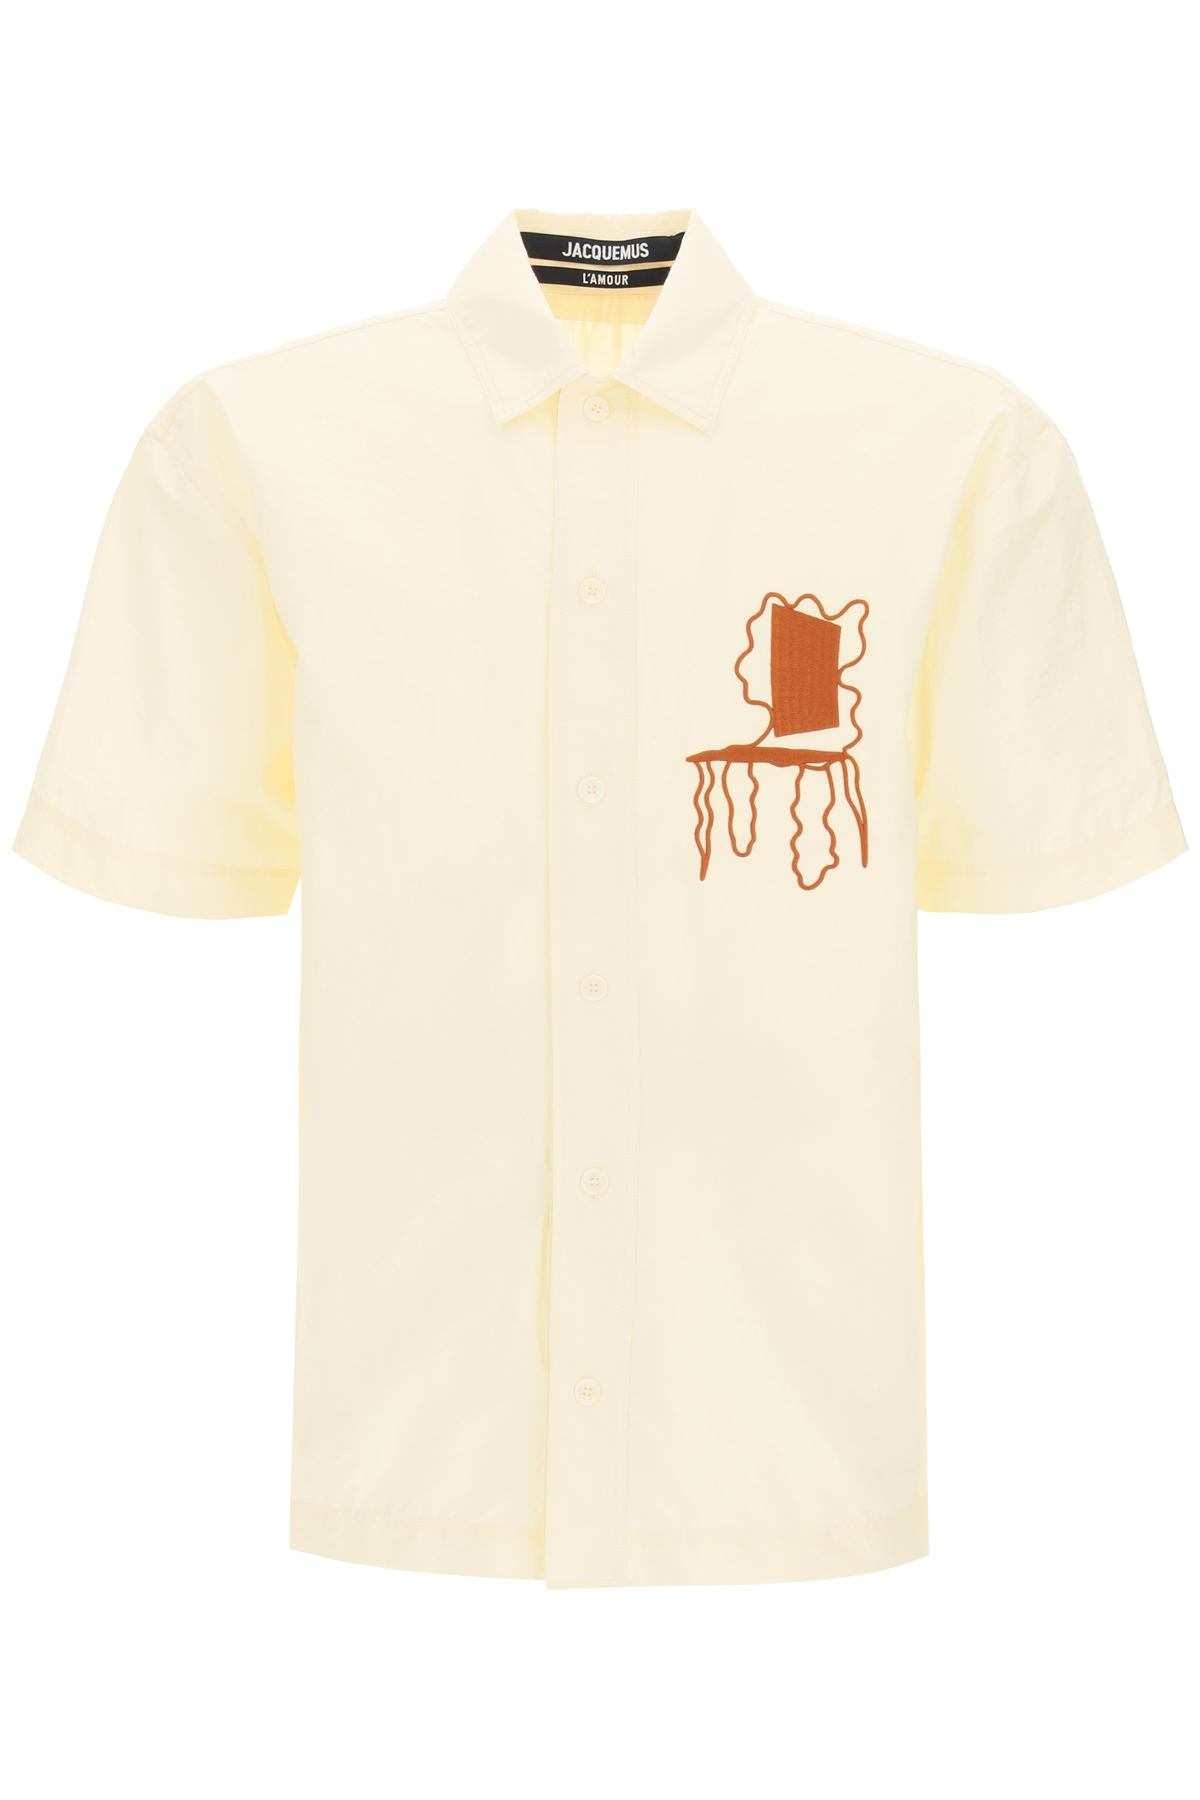 JACQUEMUS MOISSON SHIRT 48 Beige, Yellow, Brown Cotton